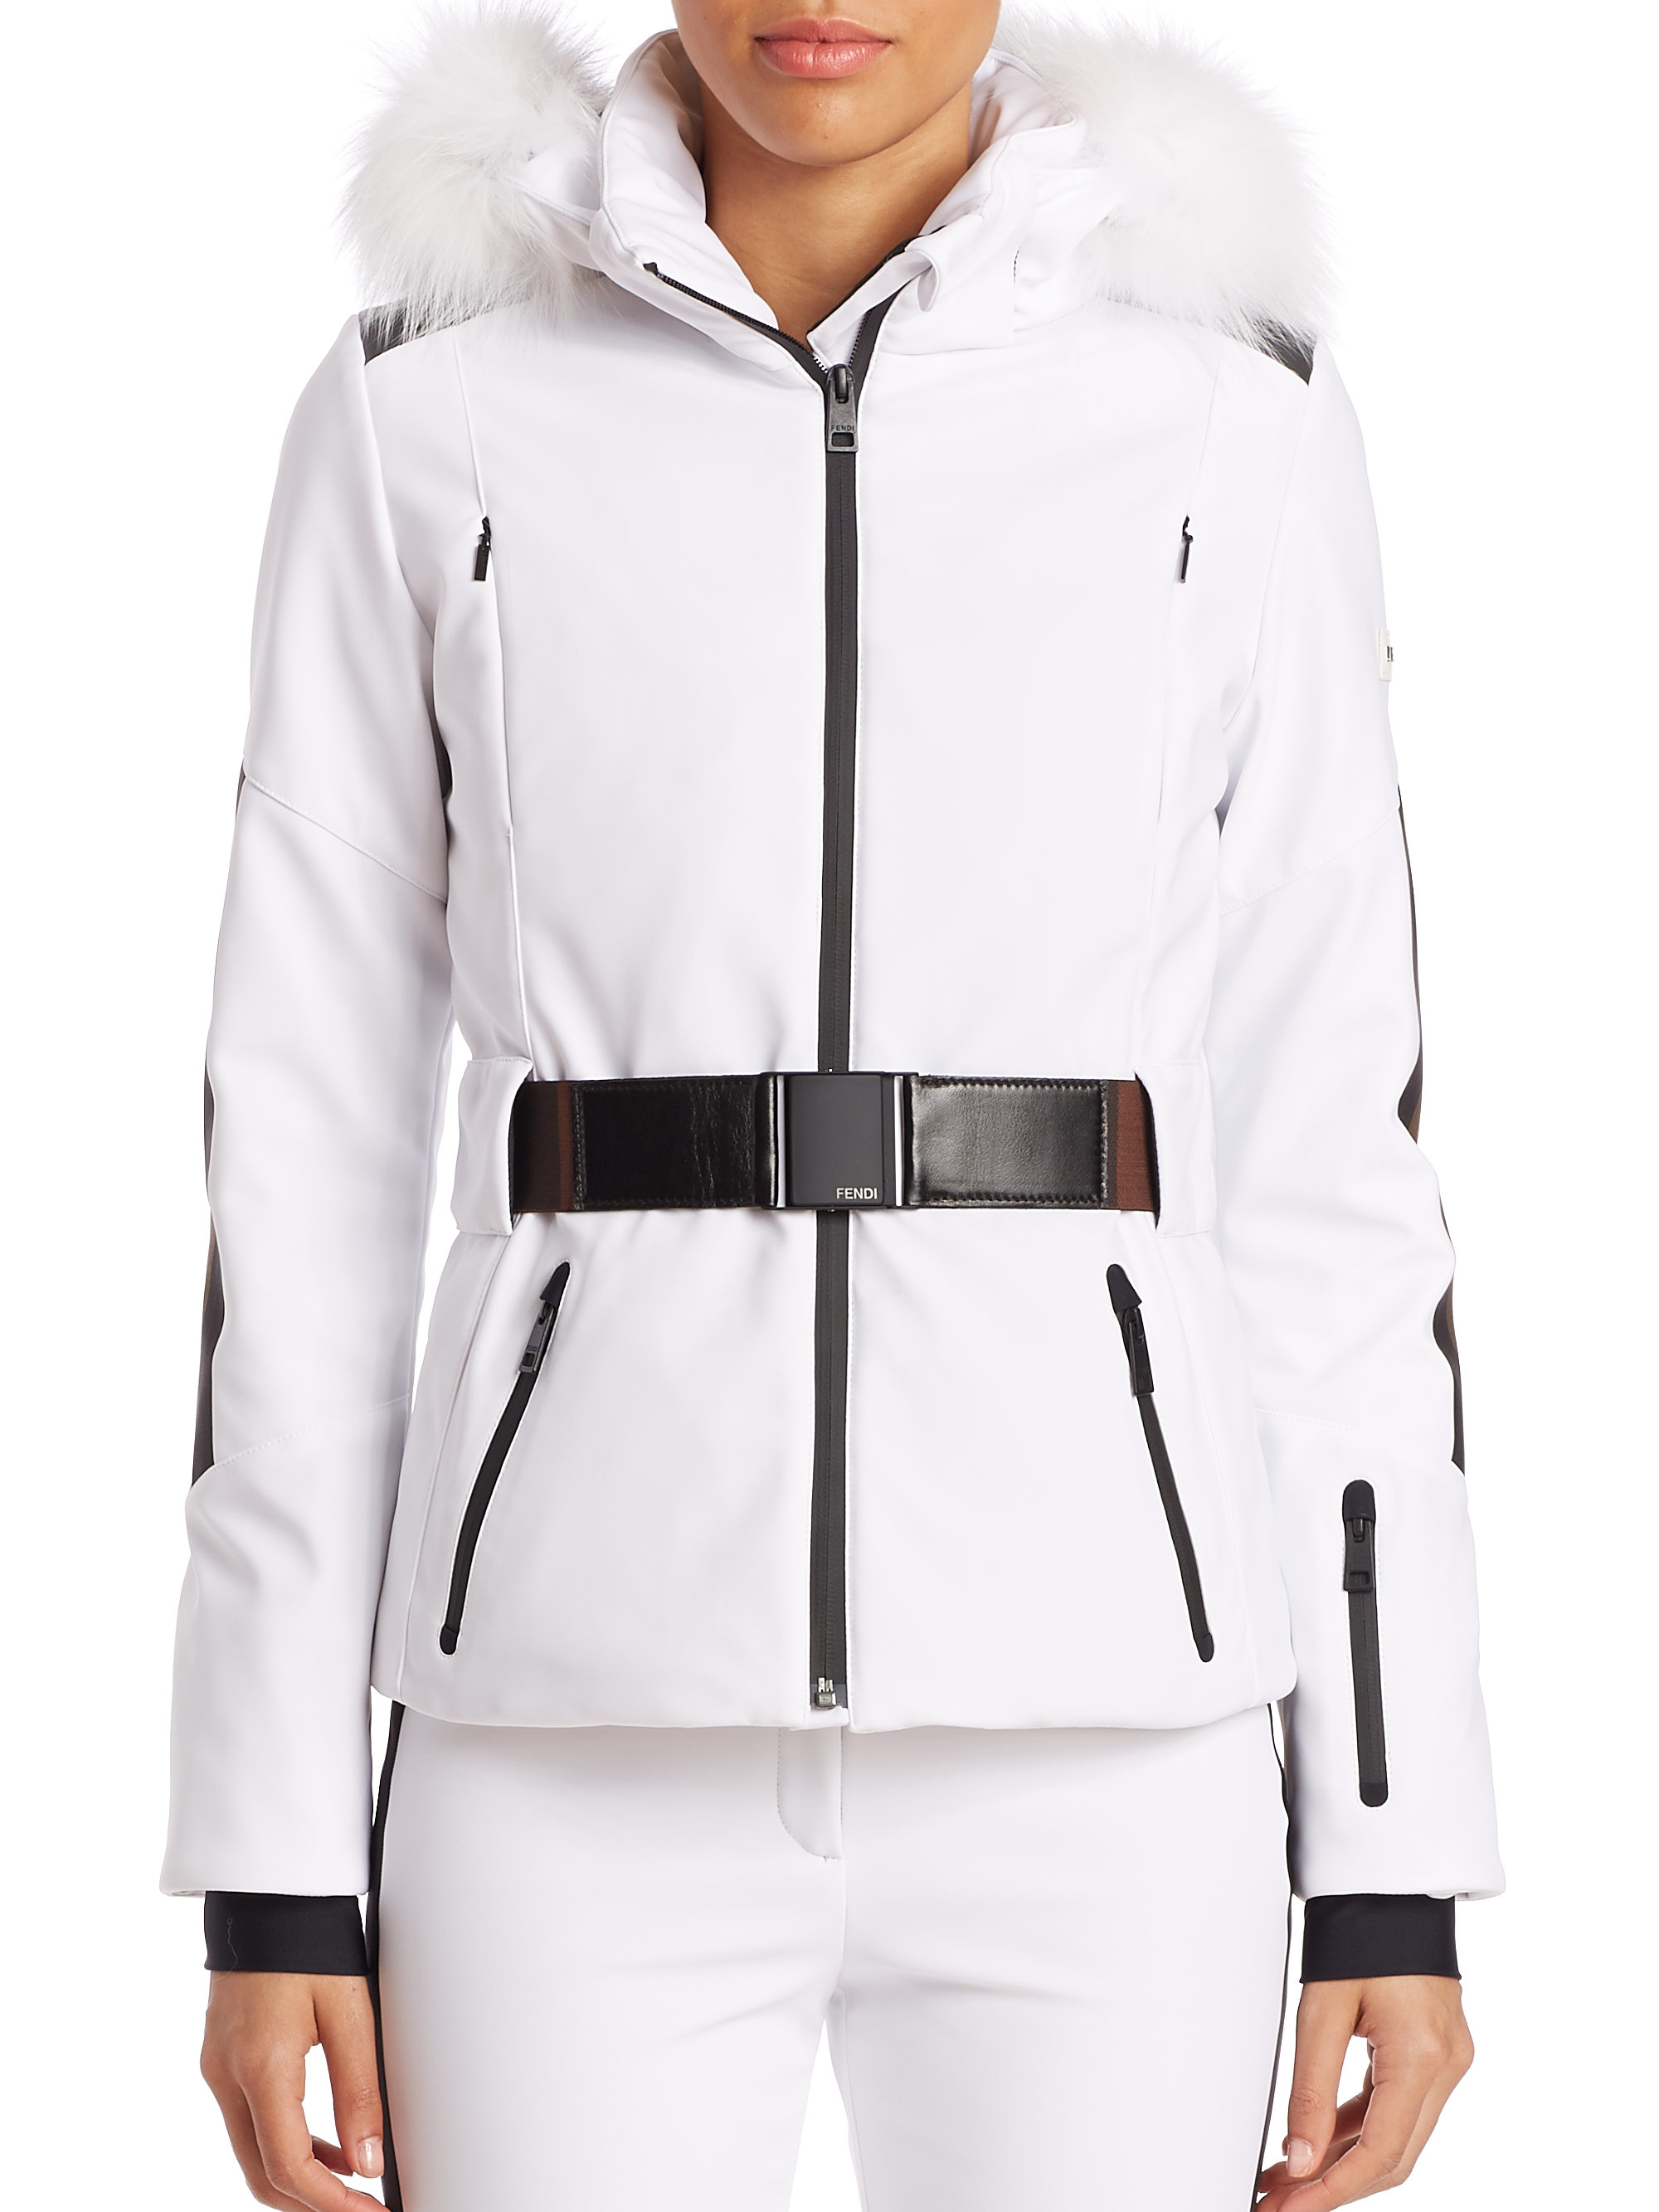 Home Womens Jackets Ski Jackets WOMENS SKI JACKETS Hit the slopes in style whether you're carving up the piste or laying fresh tracks in powder with your perfect high-performance women's ski jacket.